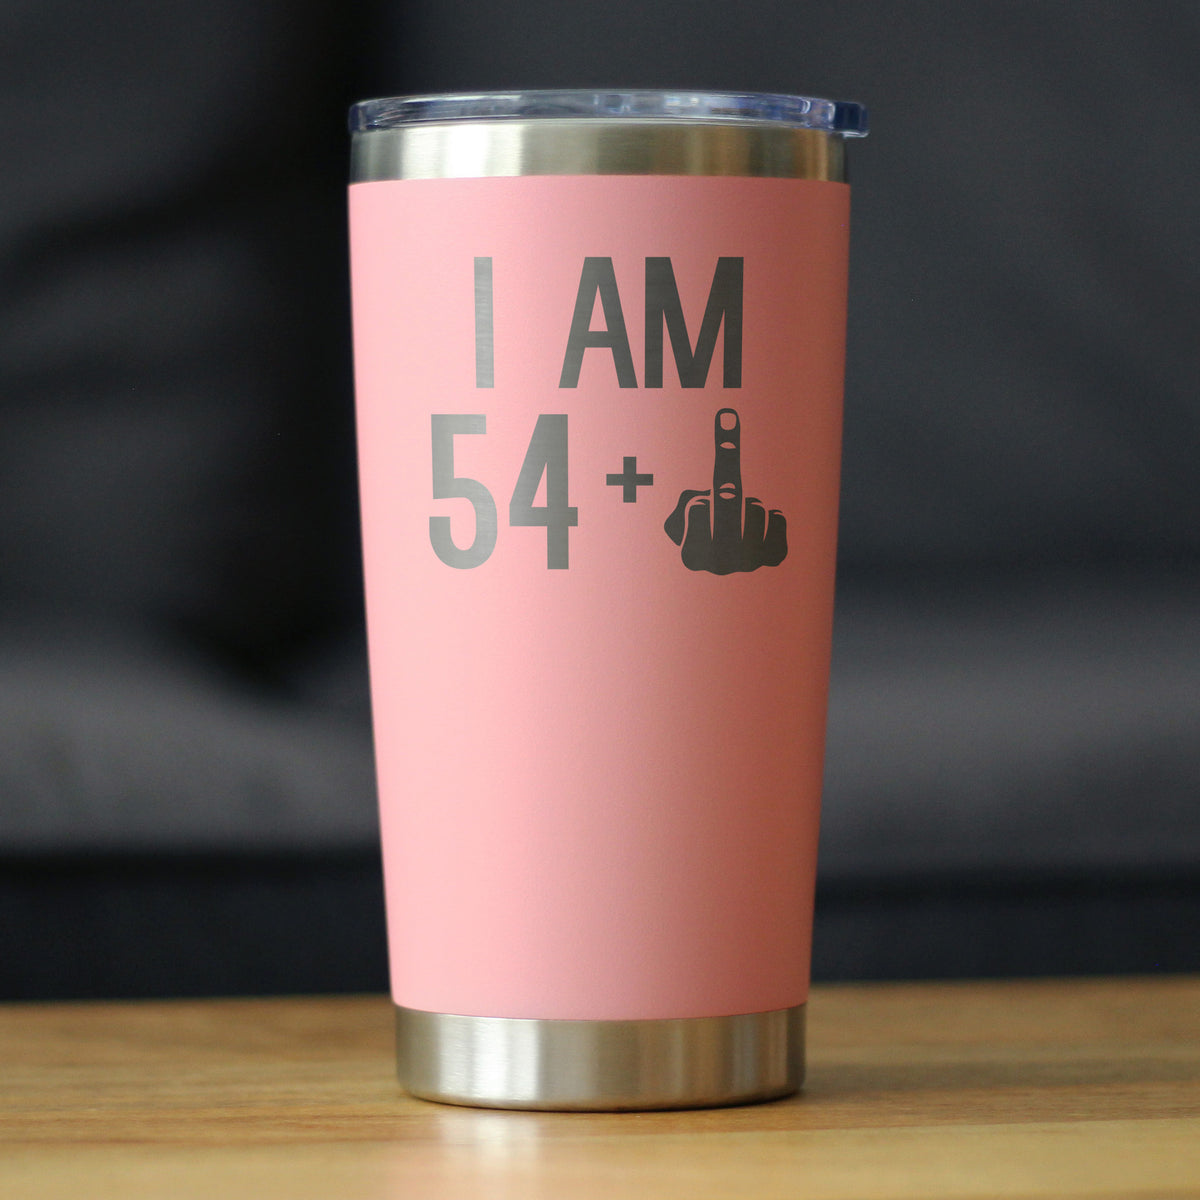 54 + 1 Middle Finger - 20 oz Coffee Tumbler